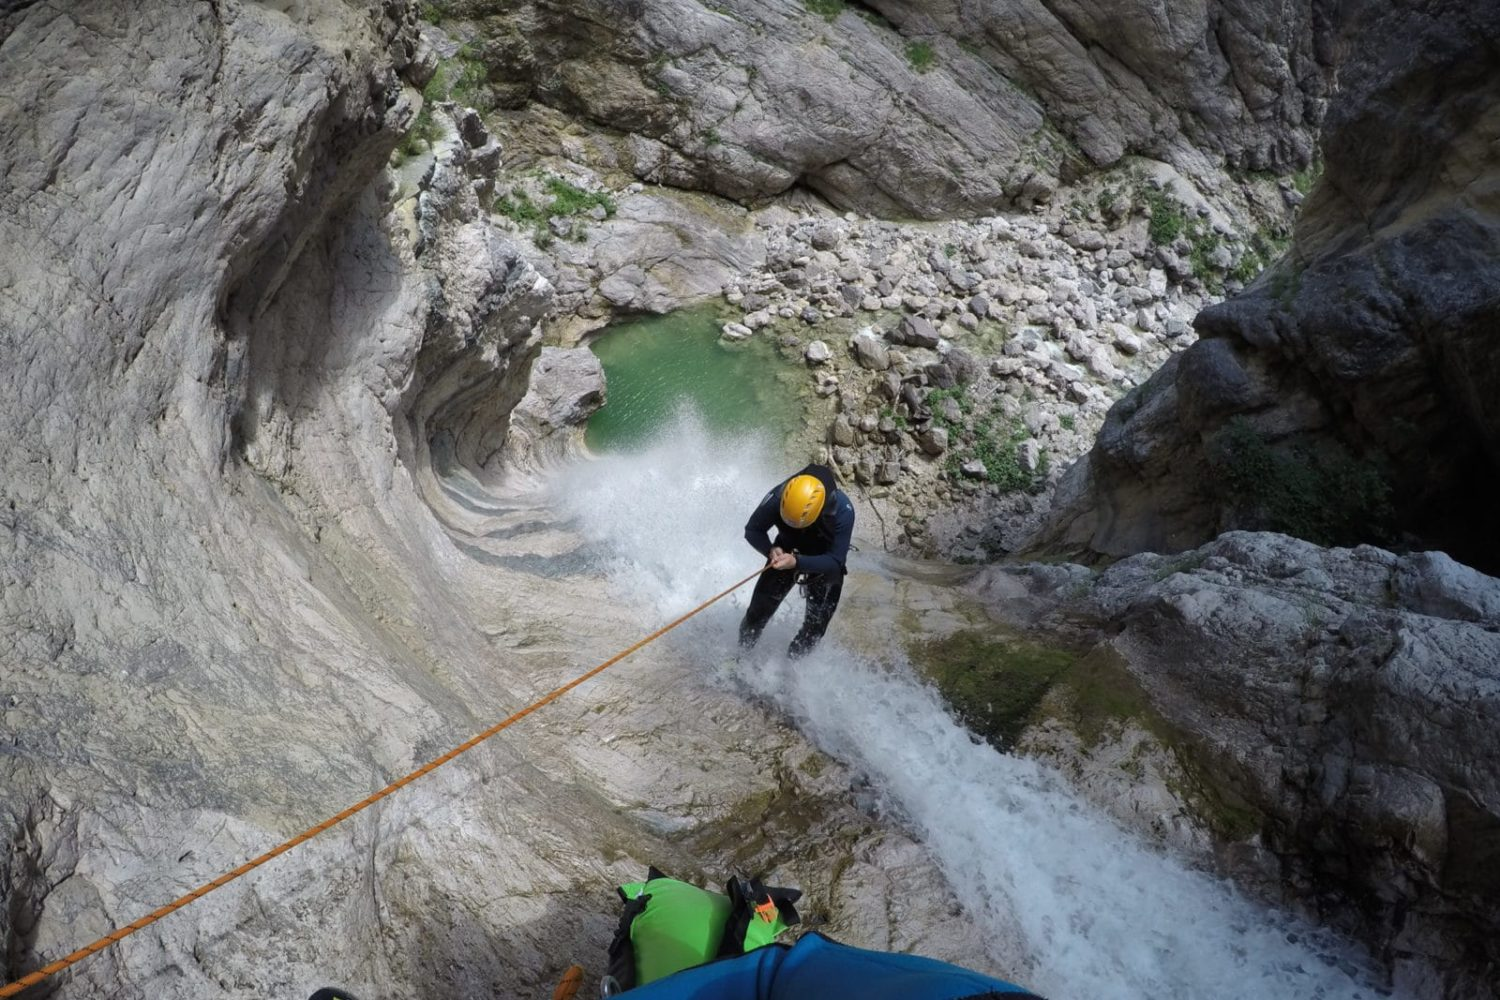 Bovec adrenaline canyoning activity